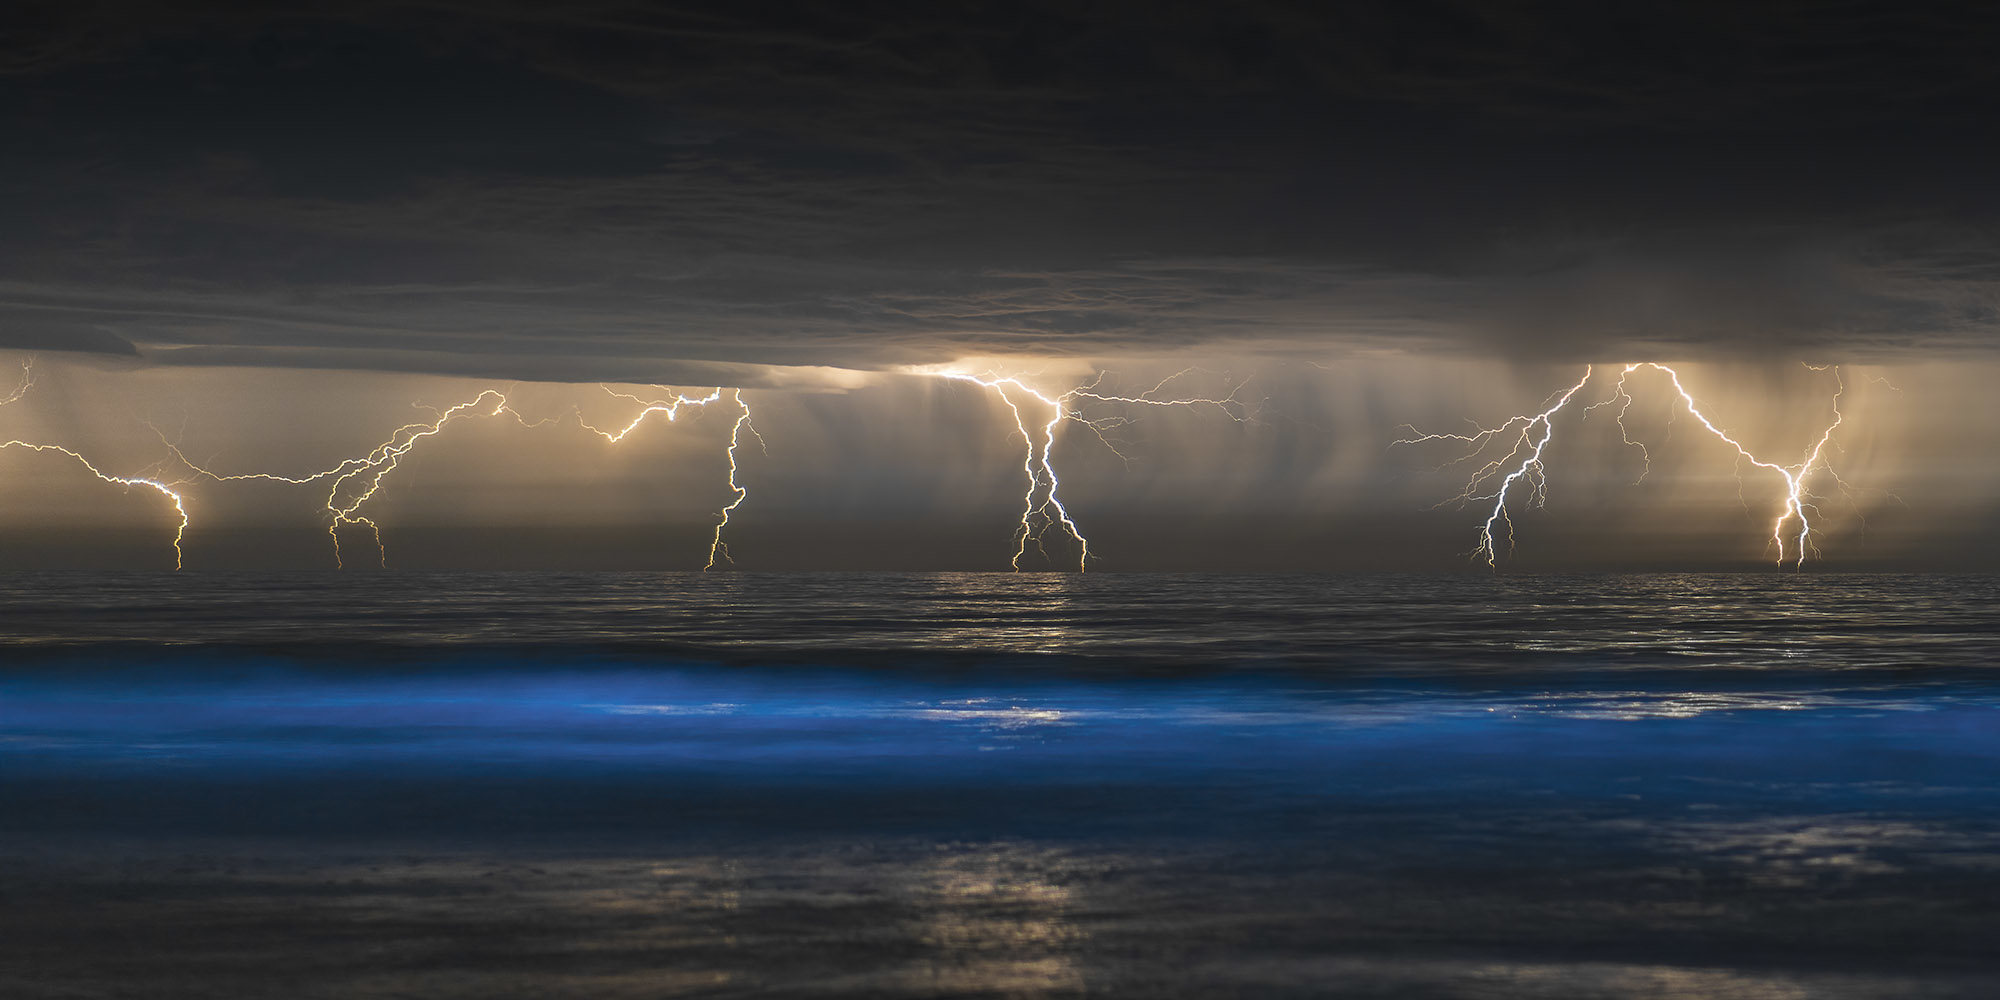 A series of lightening bolts descends grey clouds towards the ocean, with a cresting wave of glowing blue in the foreground.